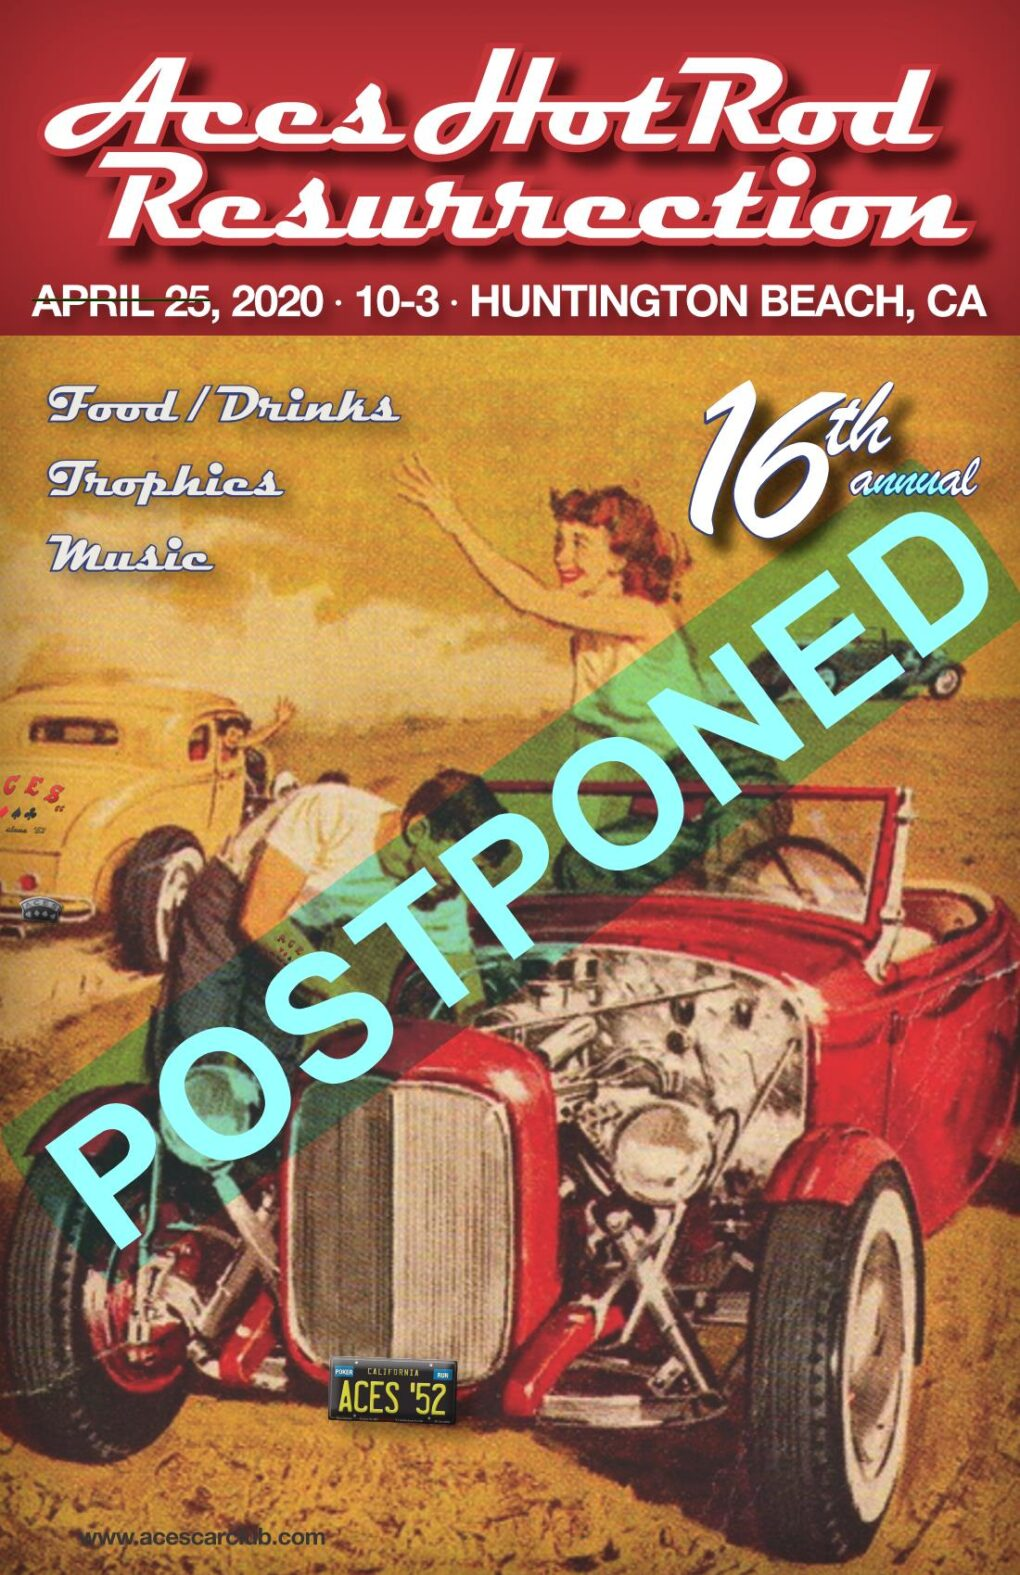 Postponed ACES Car Show